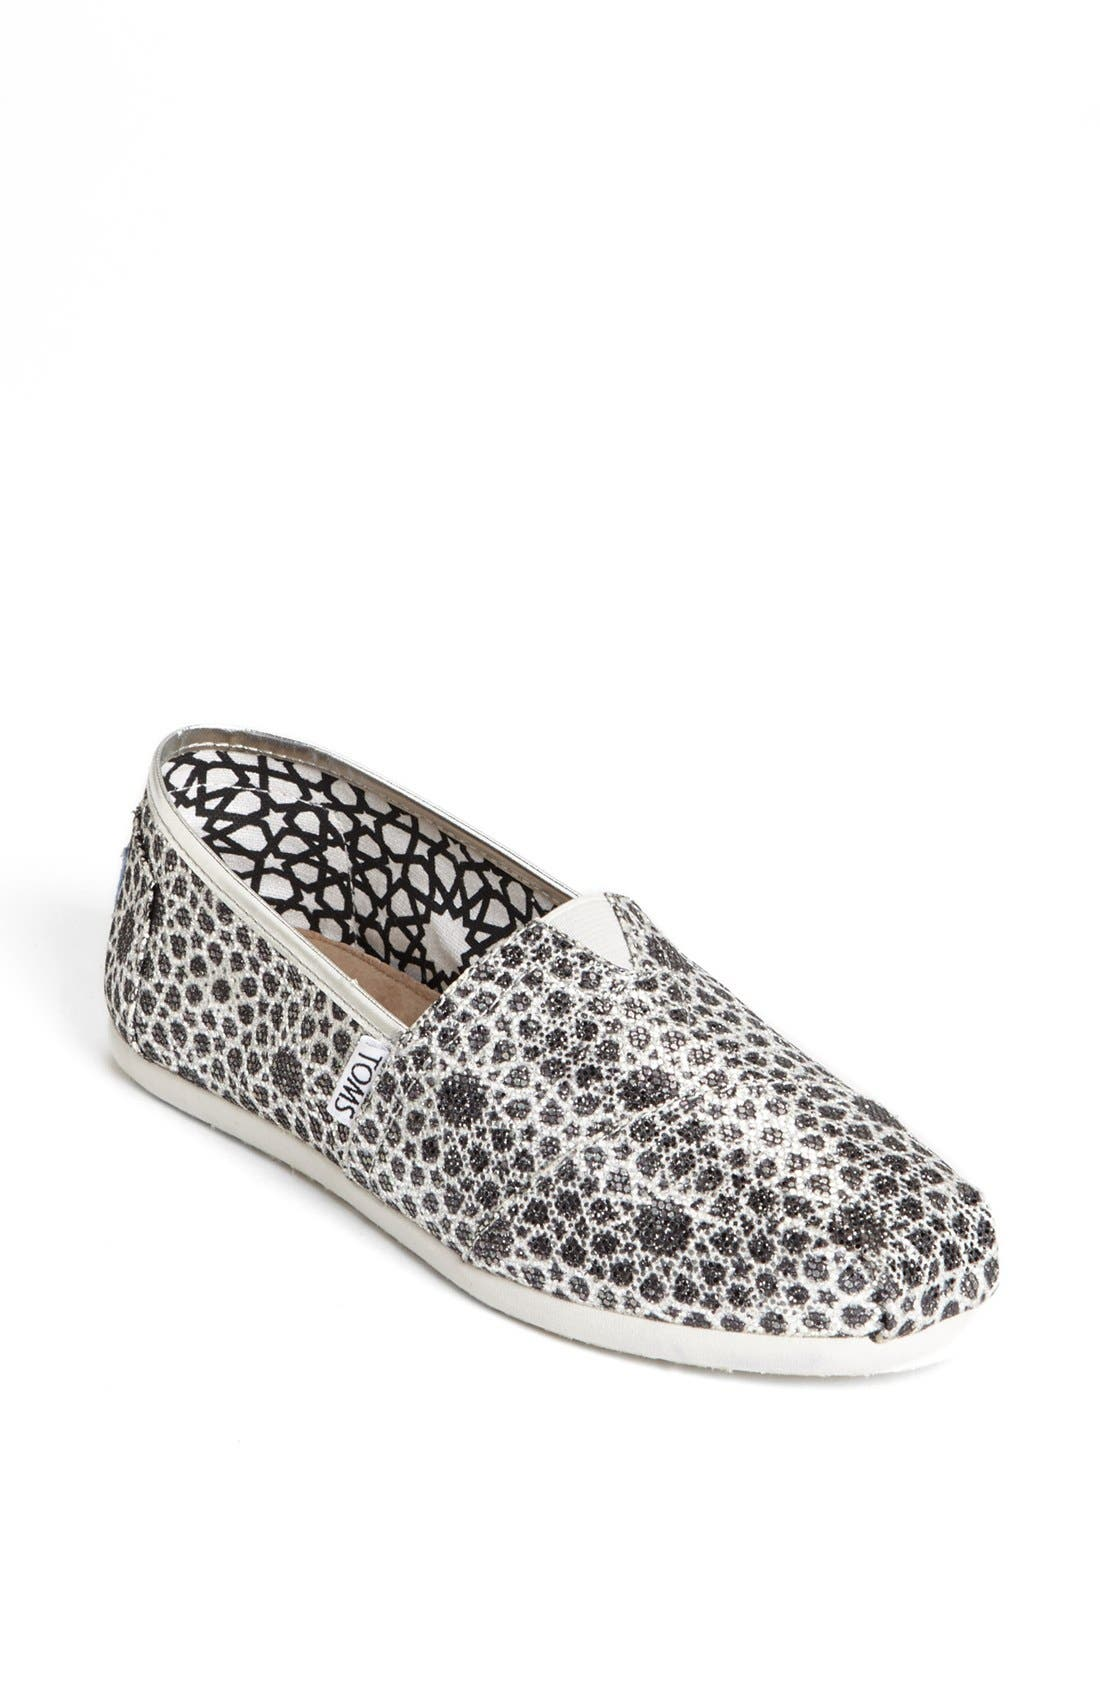 Alternate Image 1 Selected - TOMS 'Seasonal Classic - Moroccan Glitter' Slip-On (Women)